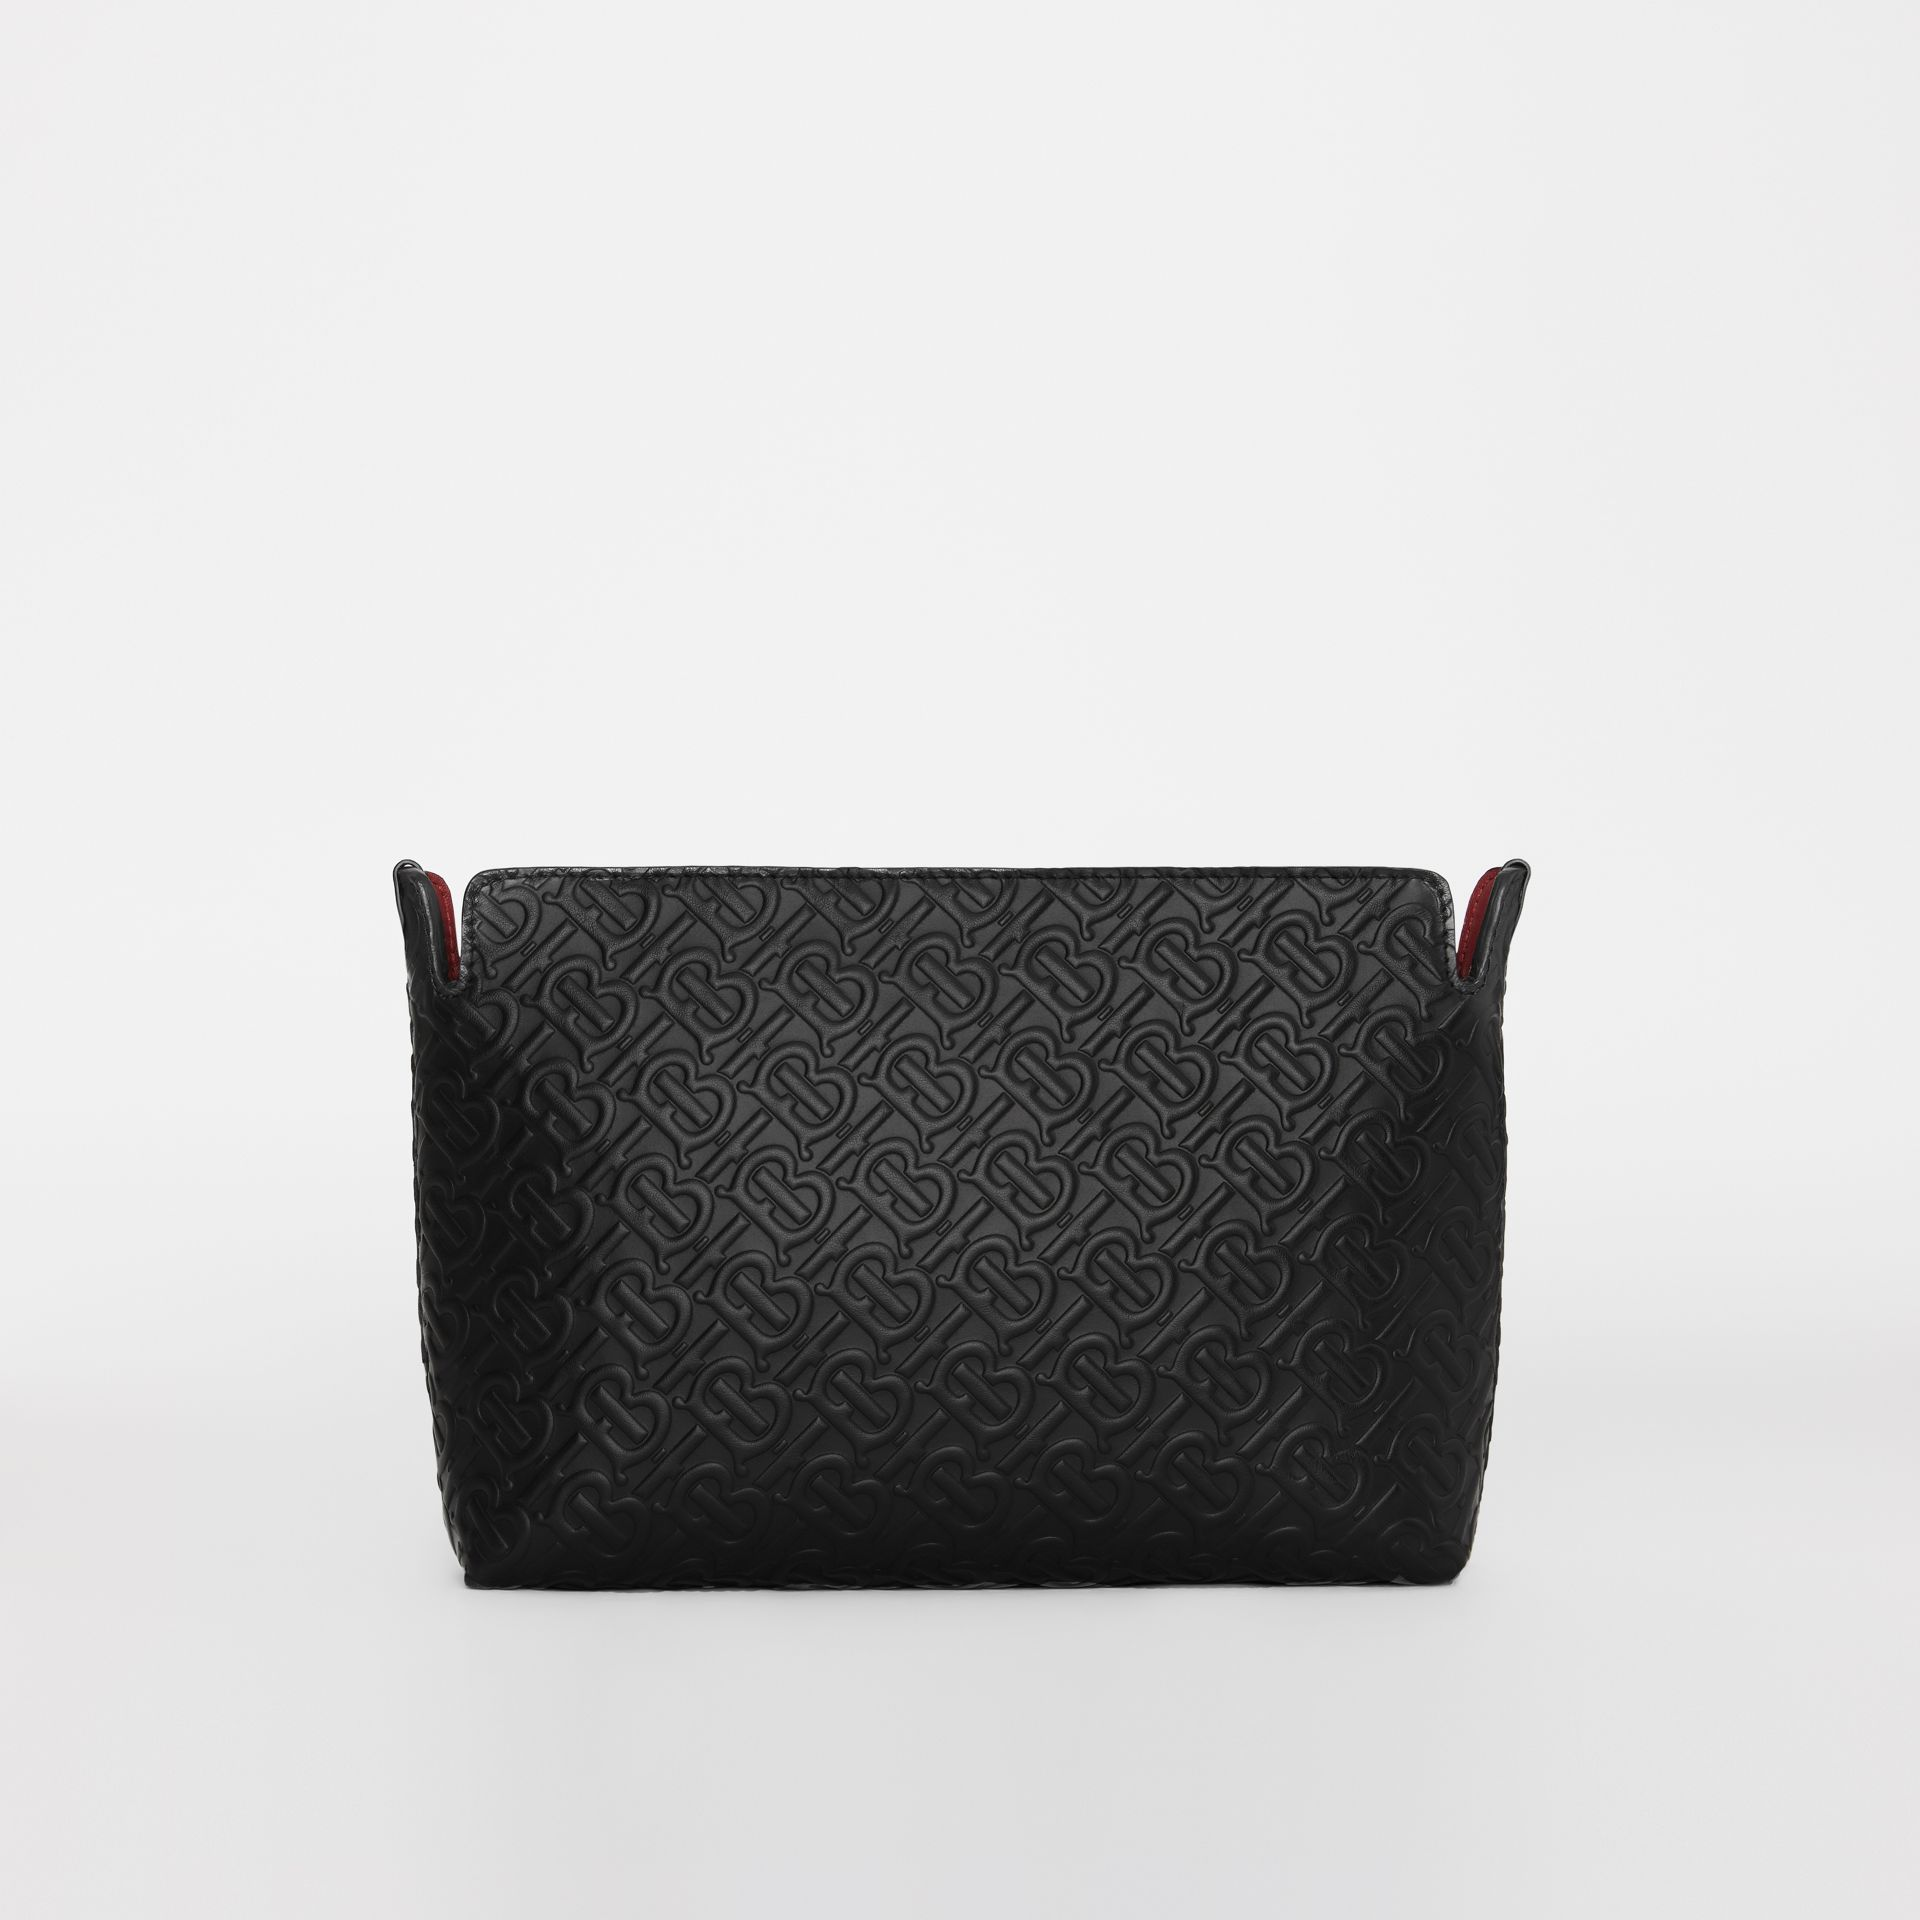 Medium Monogram Leather Clutch in Black - Women | Burberry United States - gallery image 4